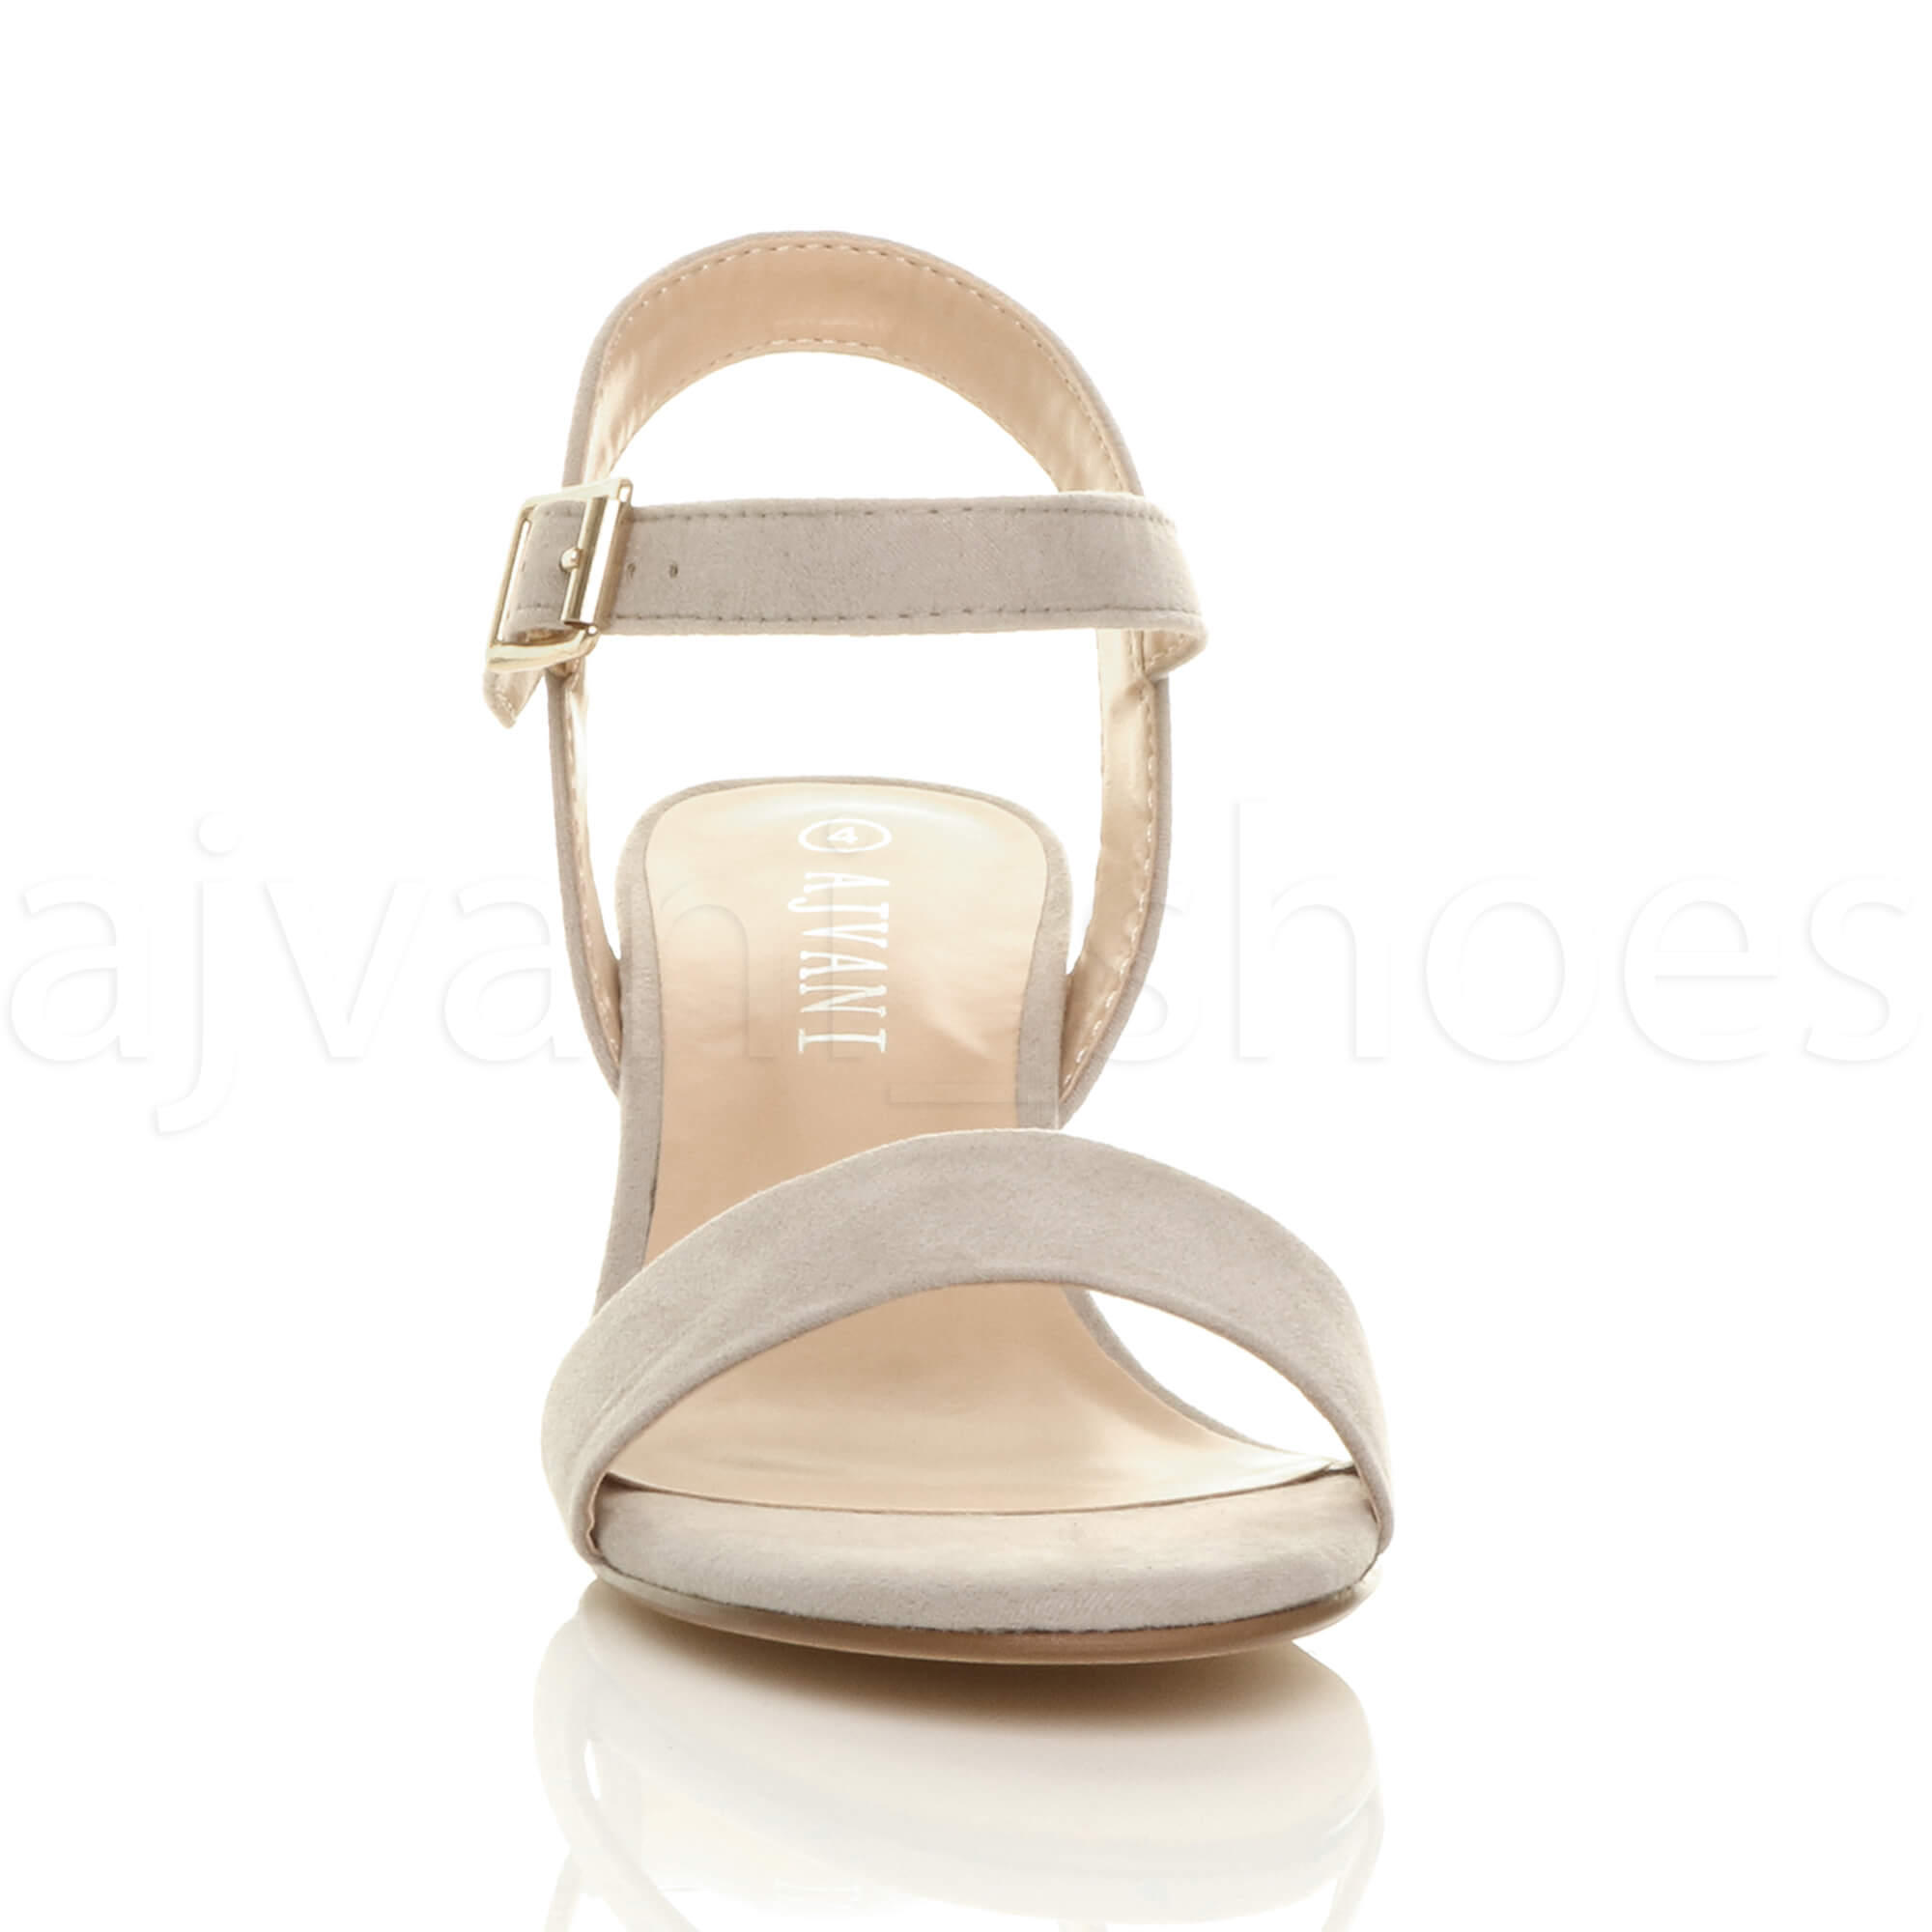 WOMENS-LADIES-MID-LOW-BLOCK-HEEL-PEEP-TOE-ANKLE-STRAP-STRAPPY-PARTY-SANDALS-SIZE thumbnail 71